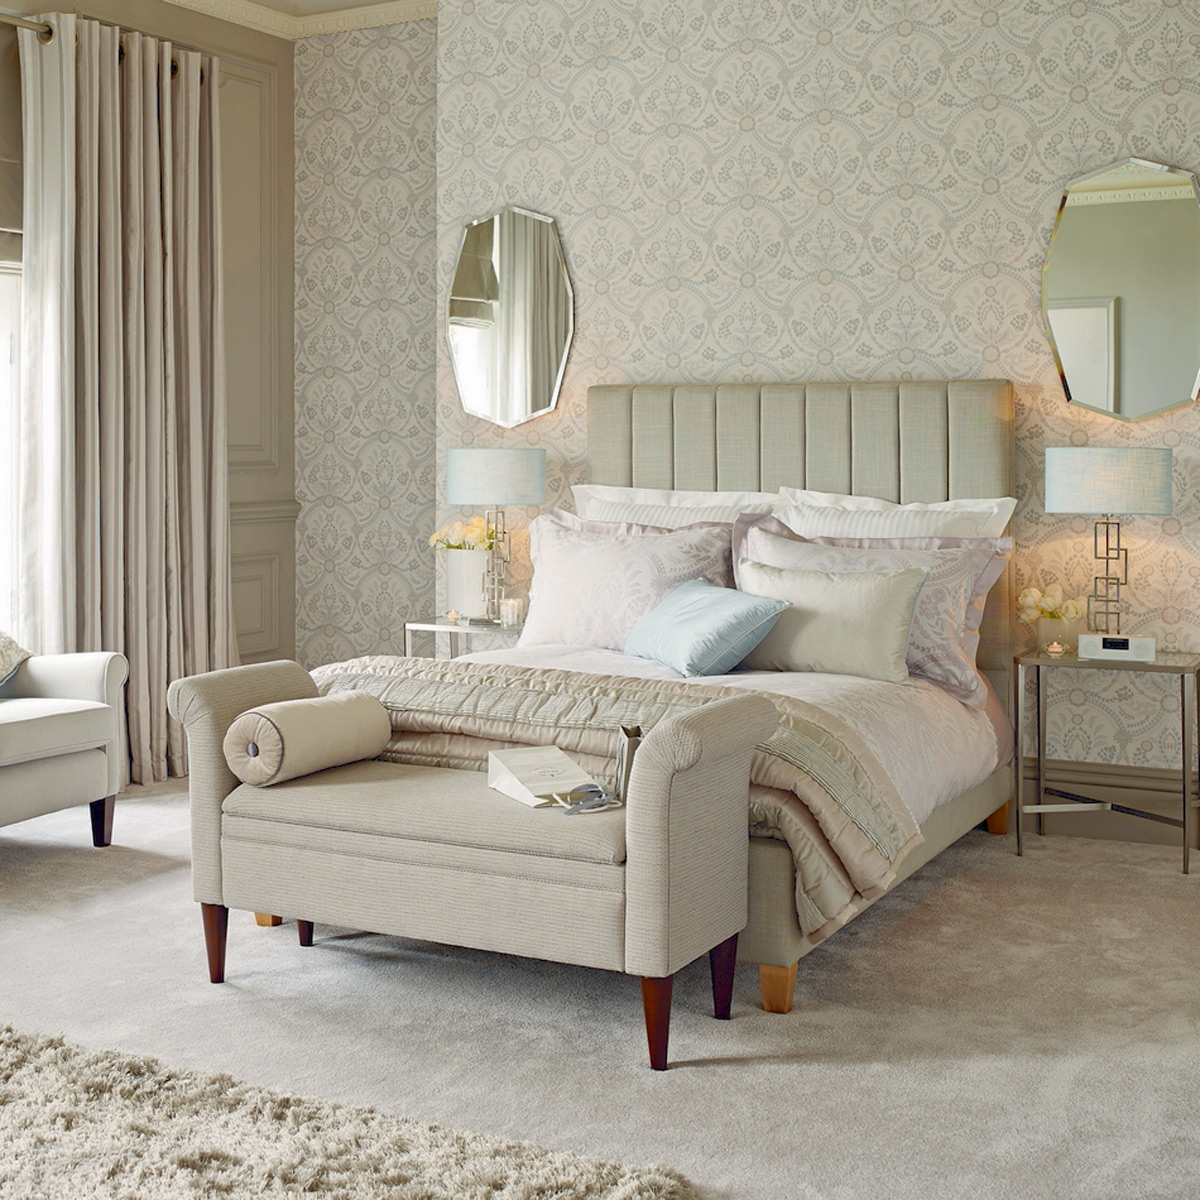 5 of the best bedrooms - Home Decorating Ideas - Good ...